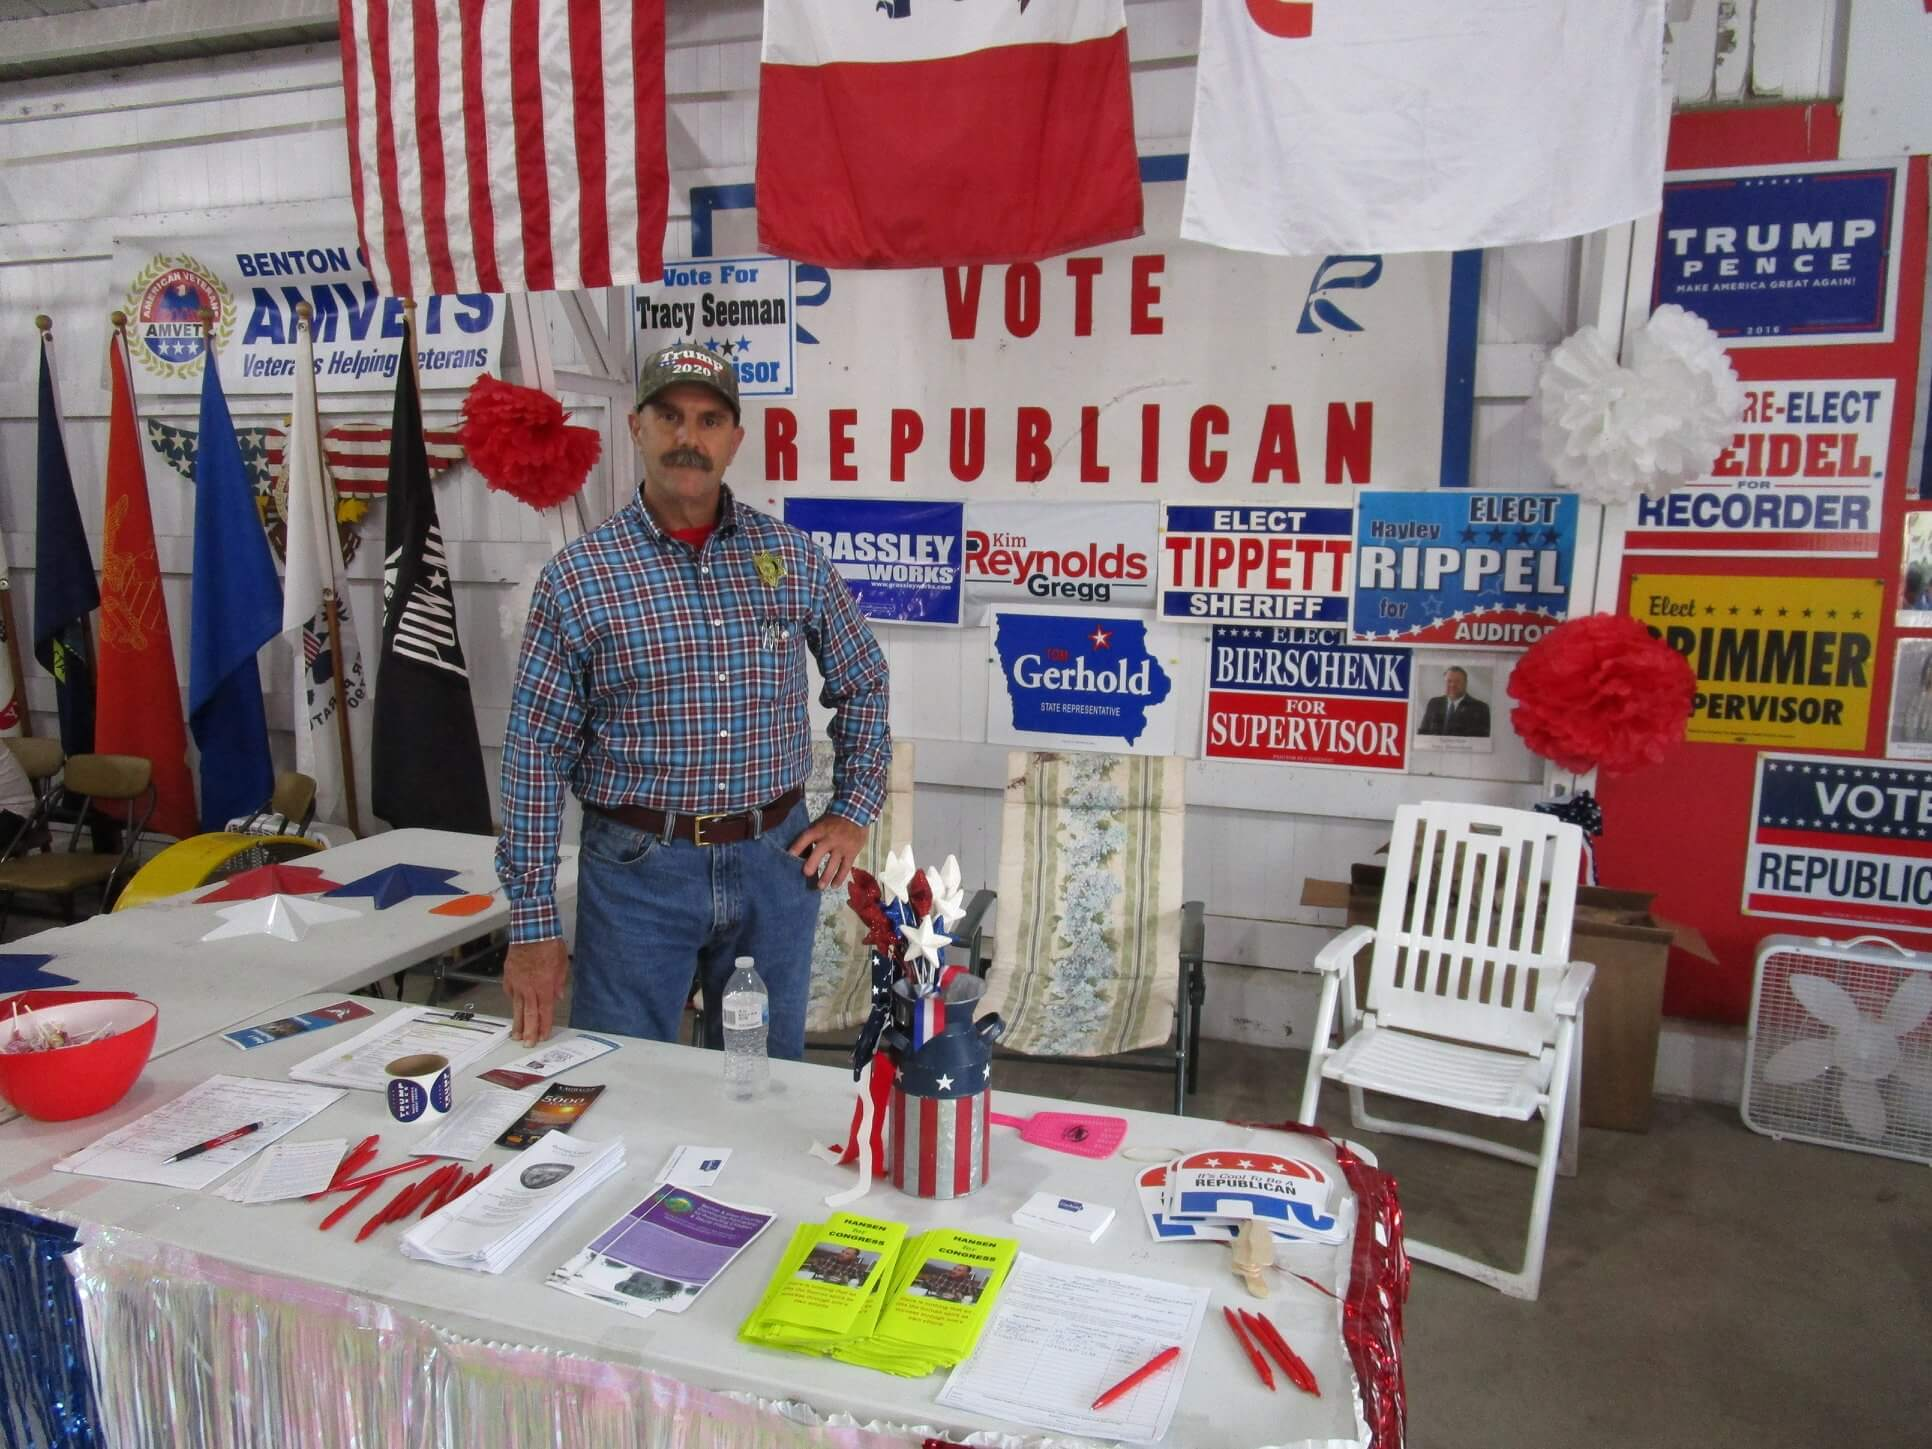 Thomas Hansen seated at Benton County Fair booth